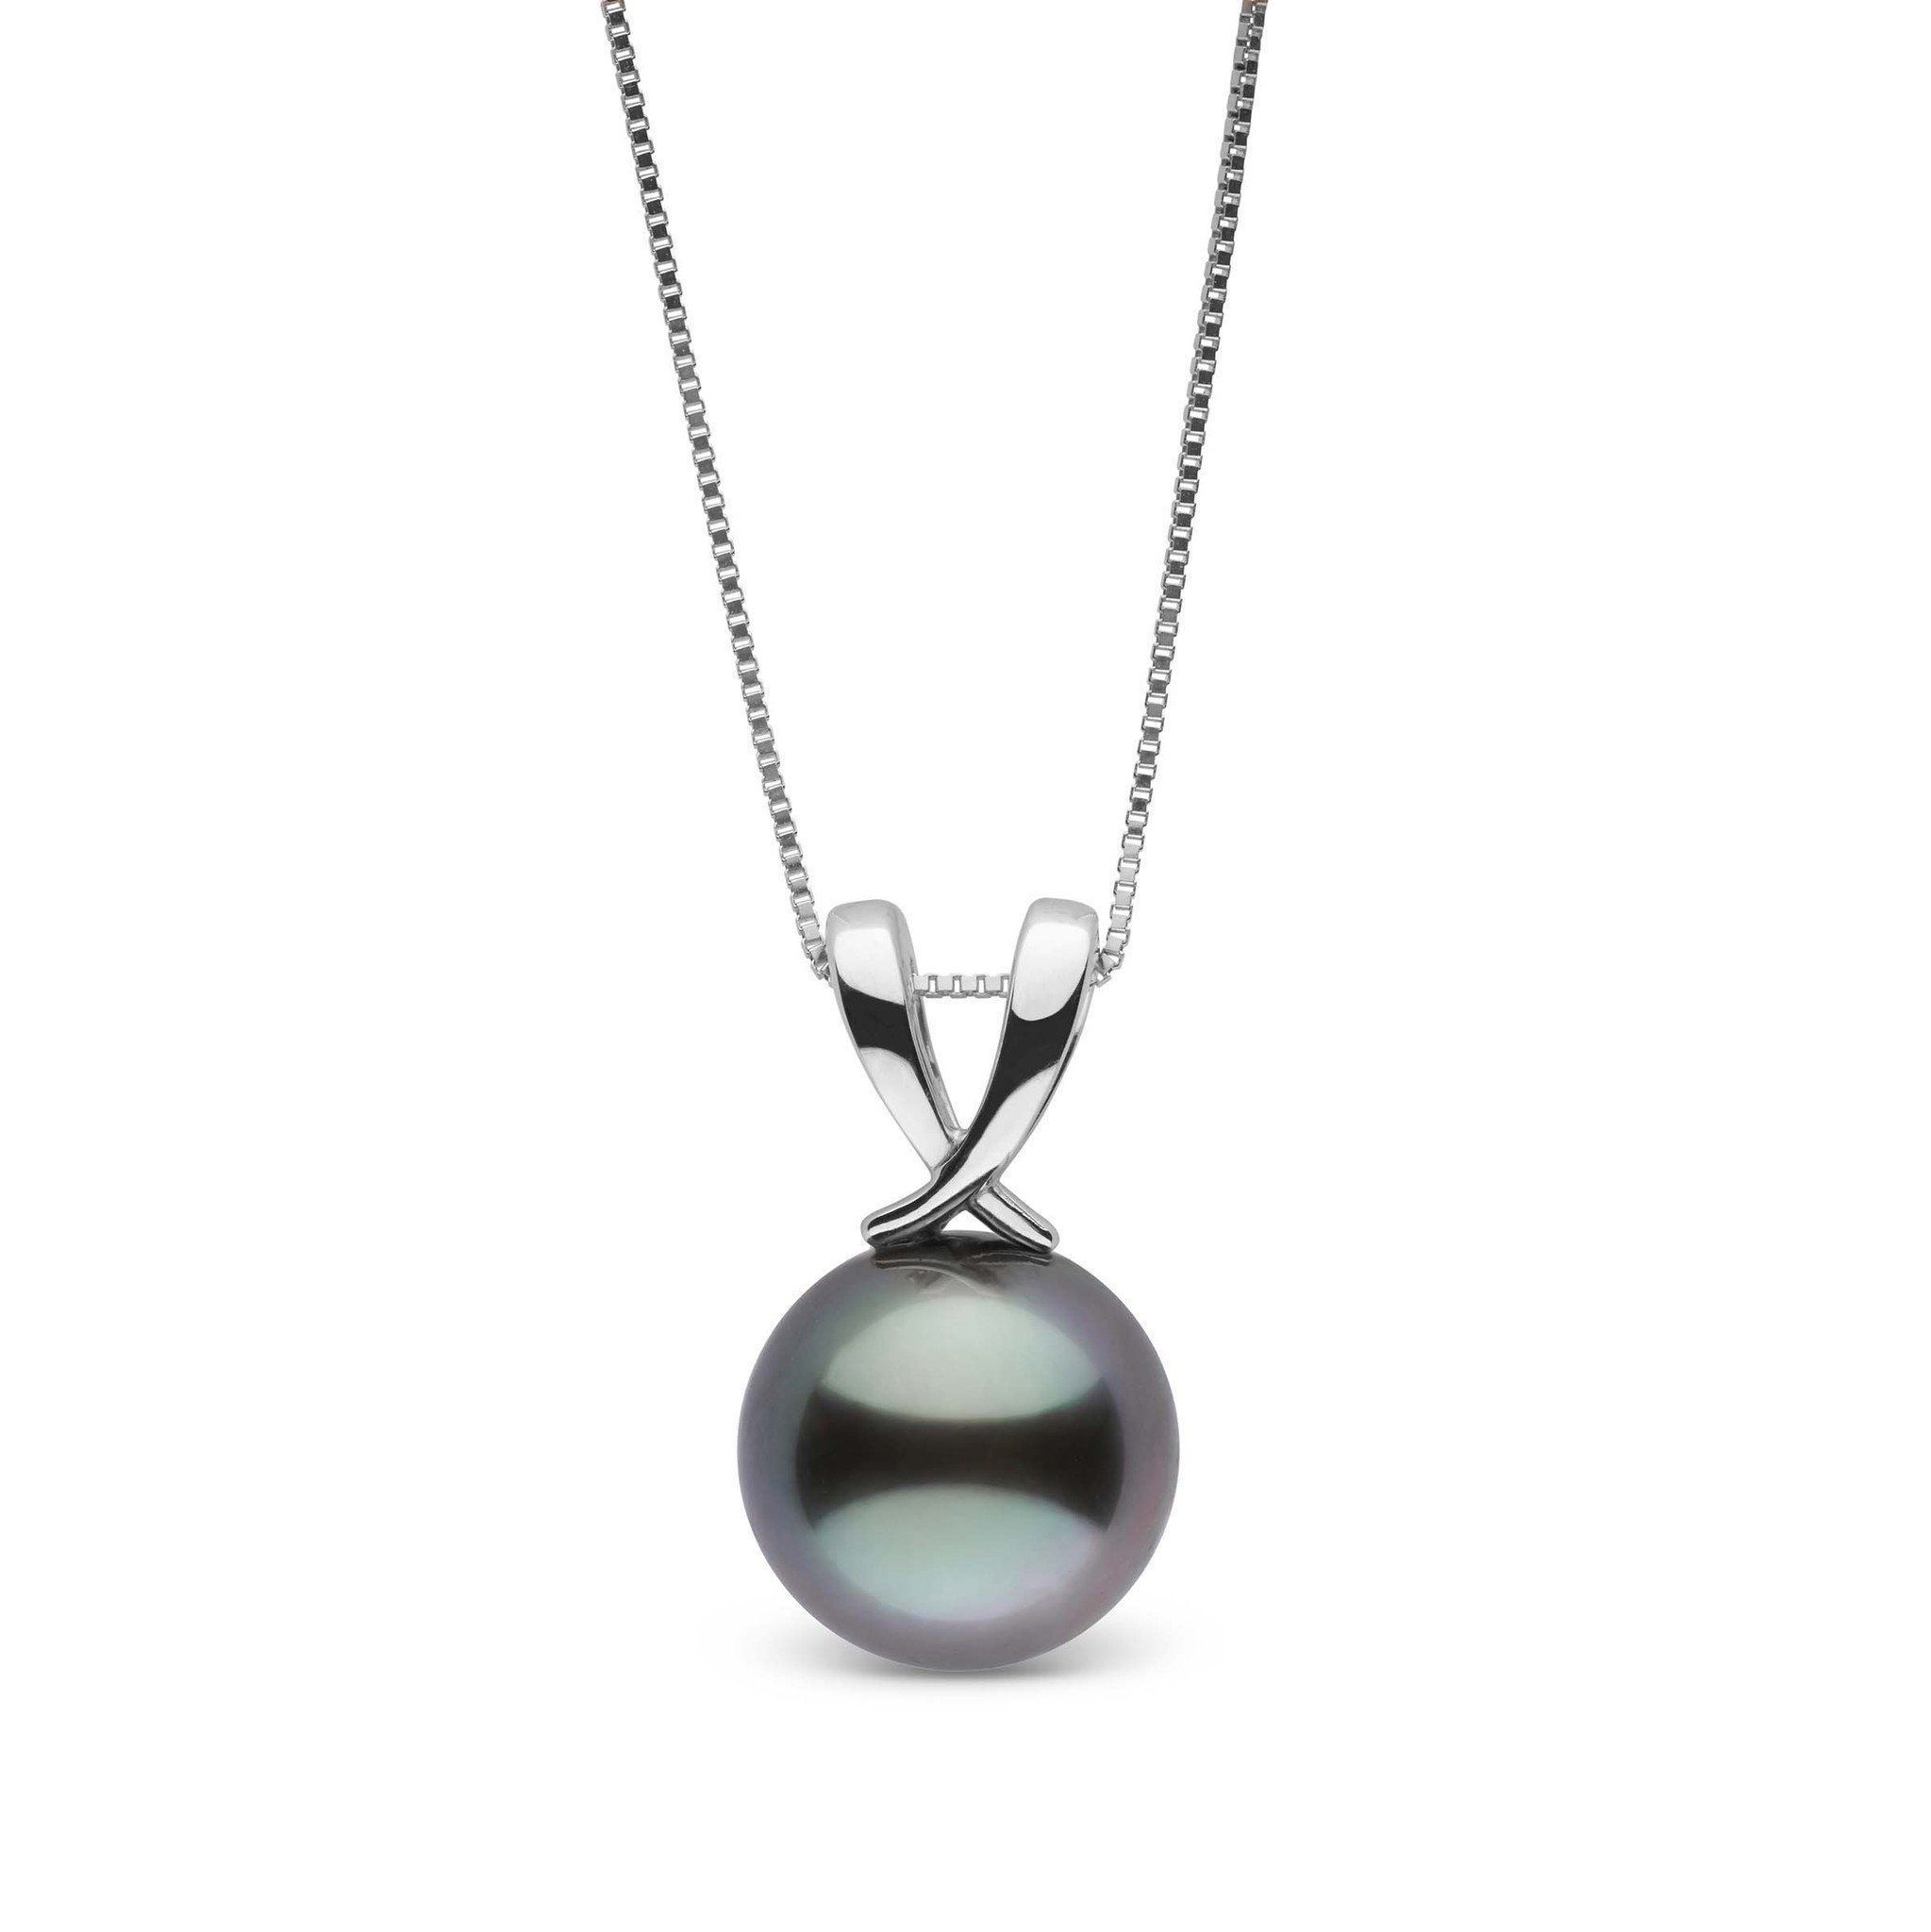 Ribbon Collection 10.0-11.0 mm Tahitian Pearl Pendant